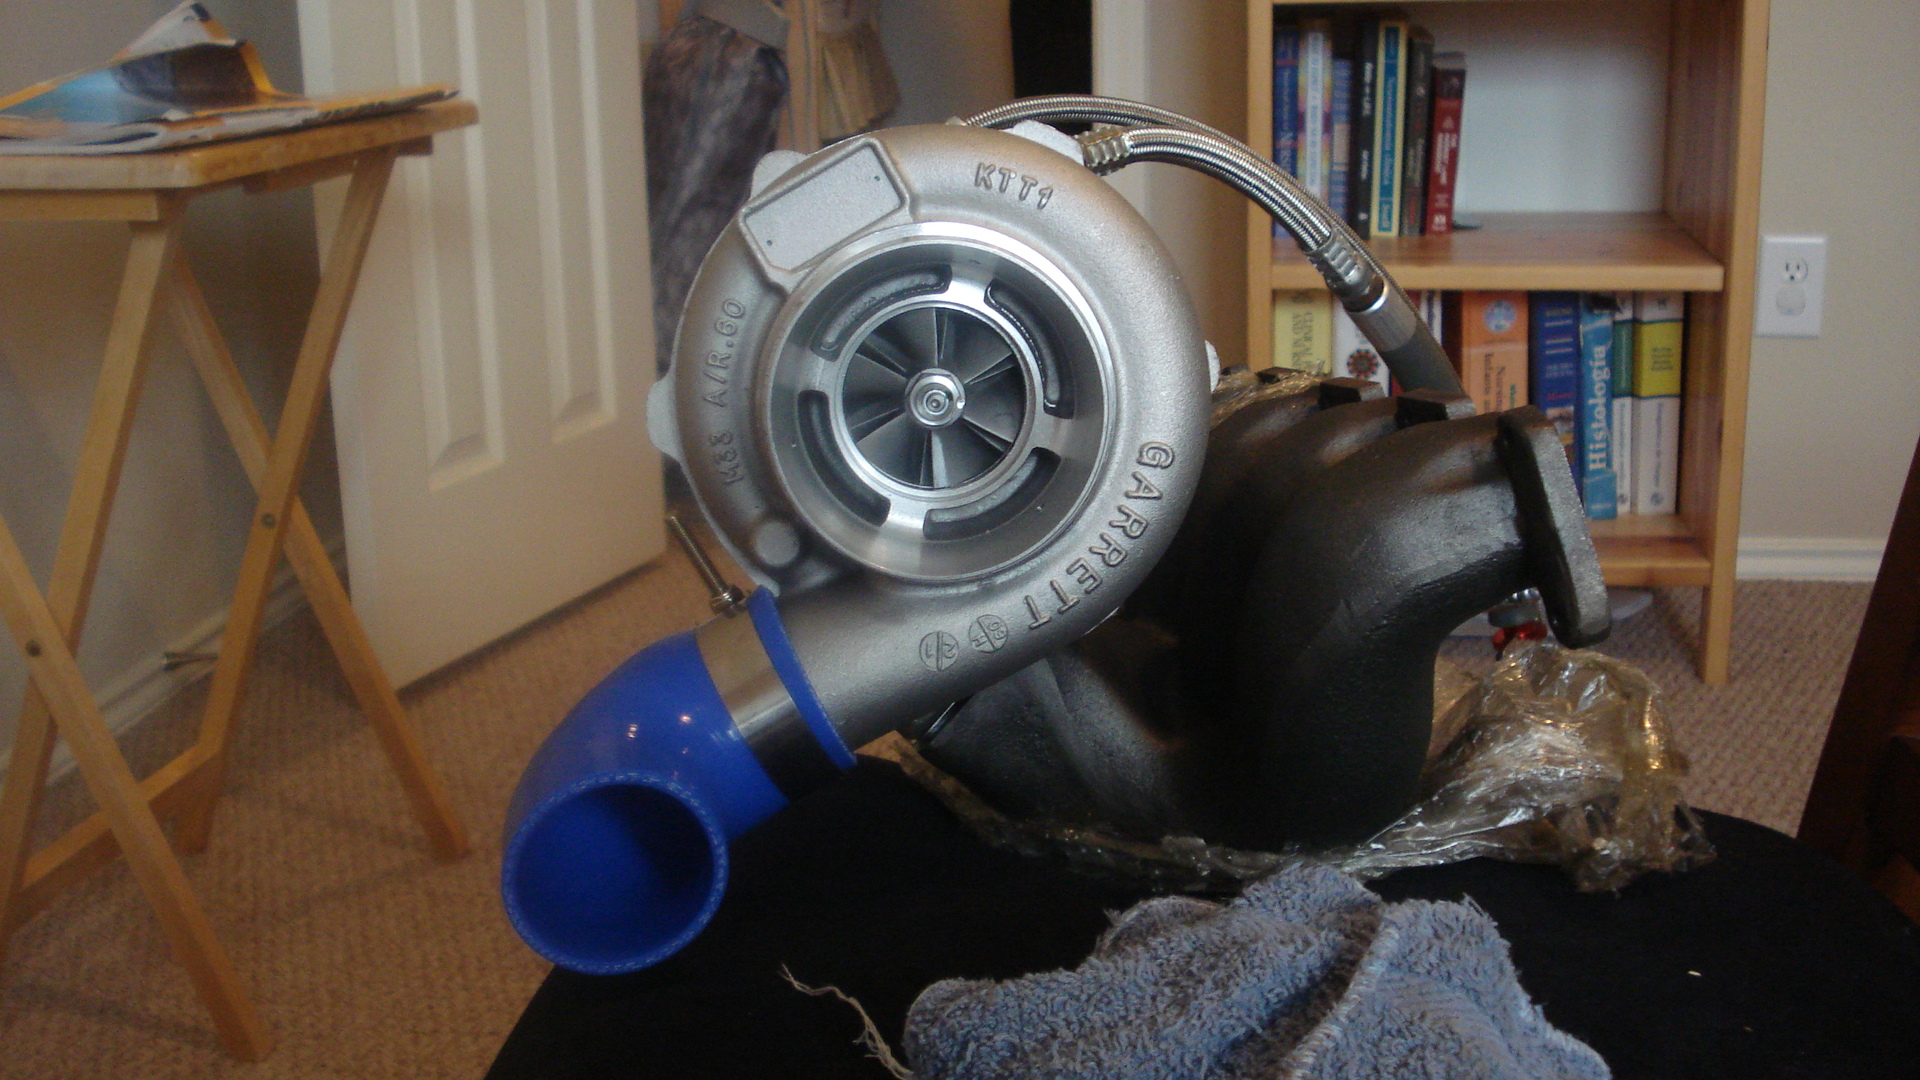 N75 with external wastegate